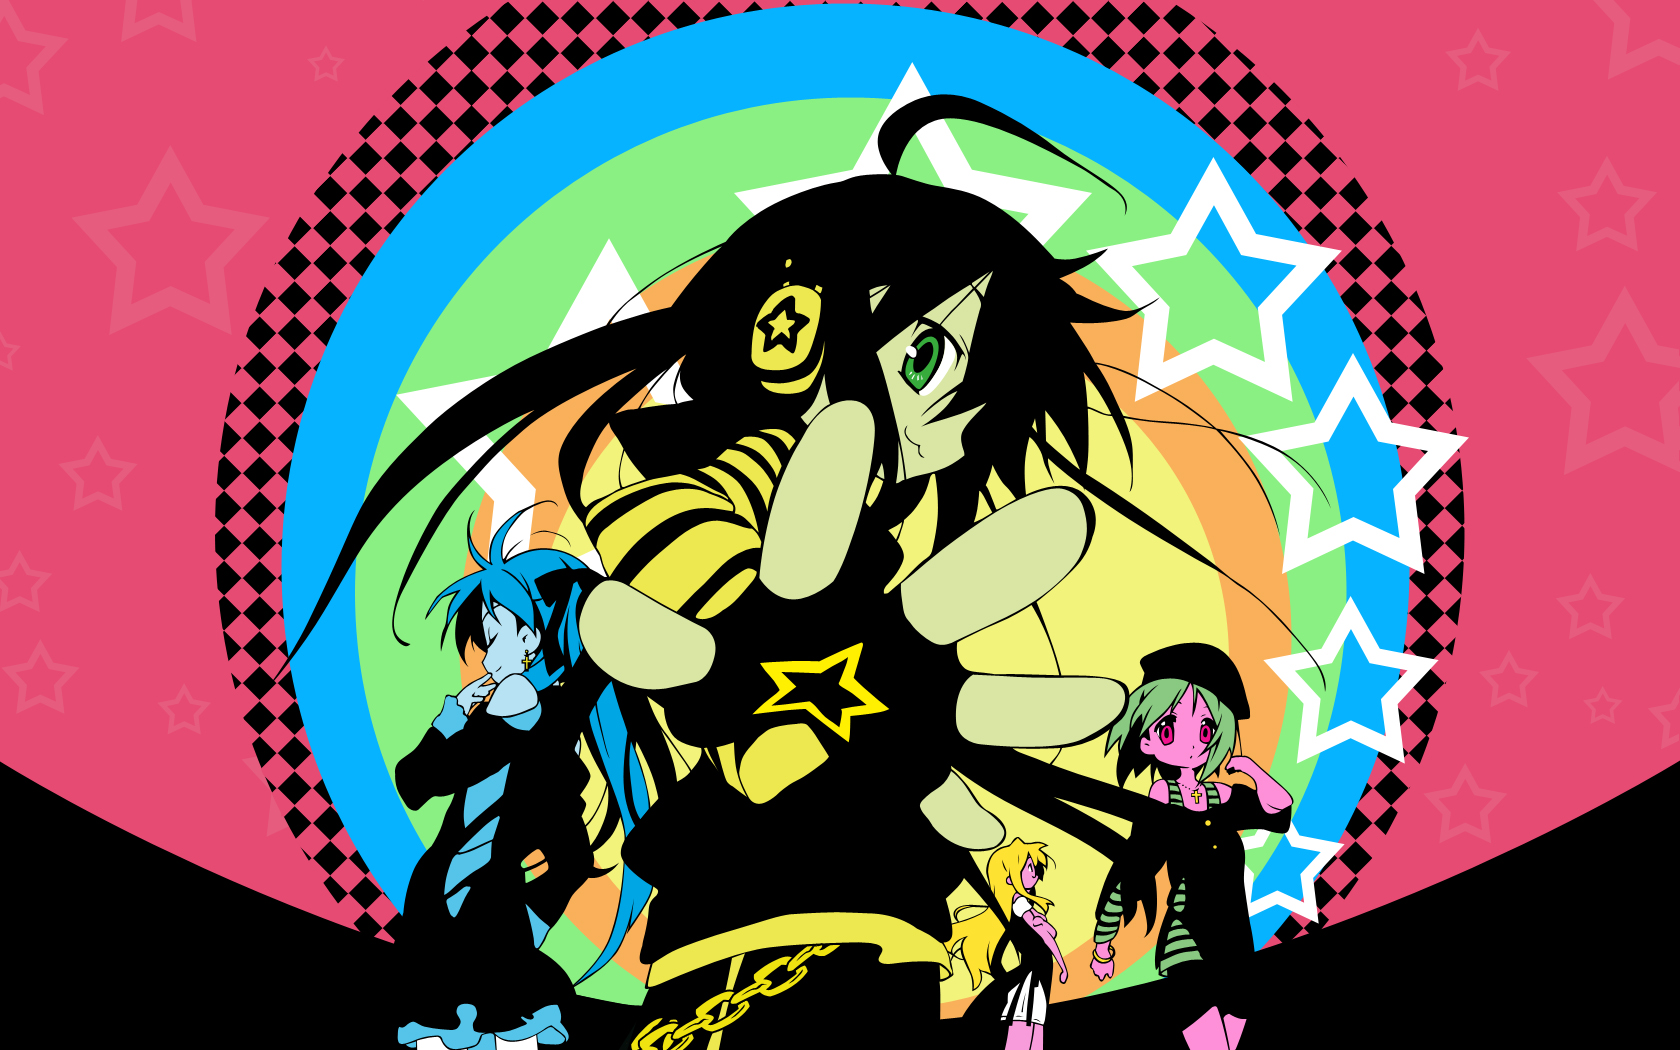 lucky star images lucky star hd wallpaper and background photos